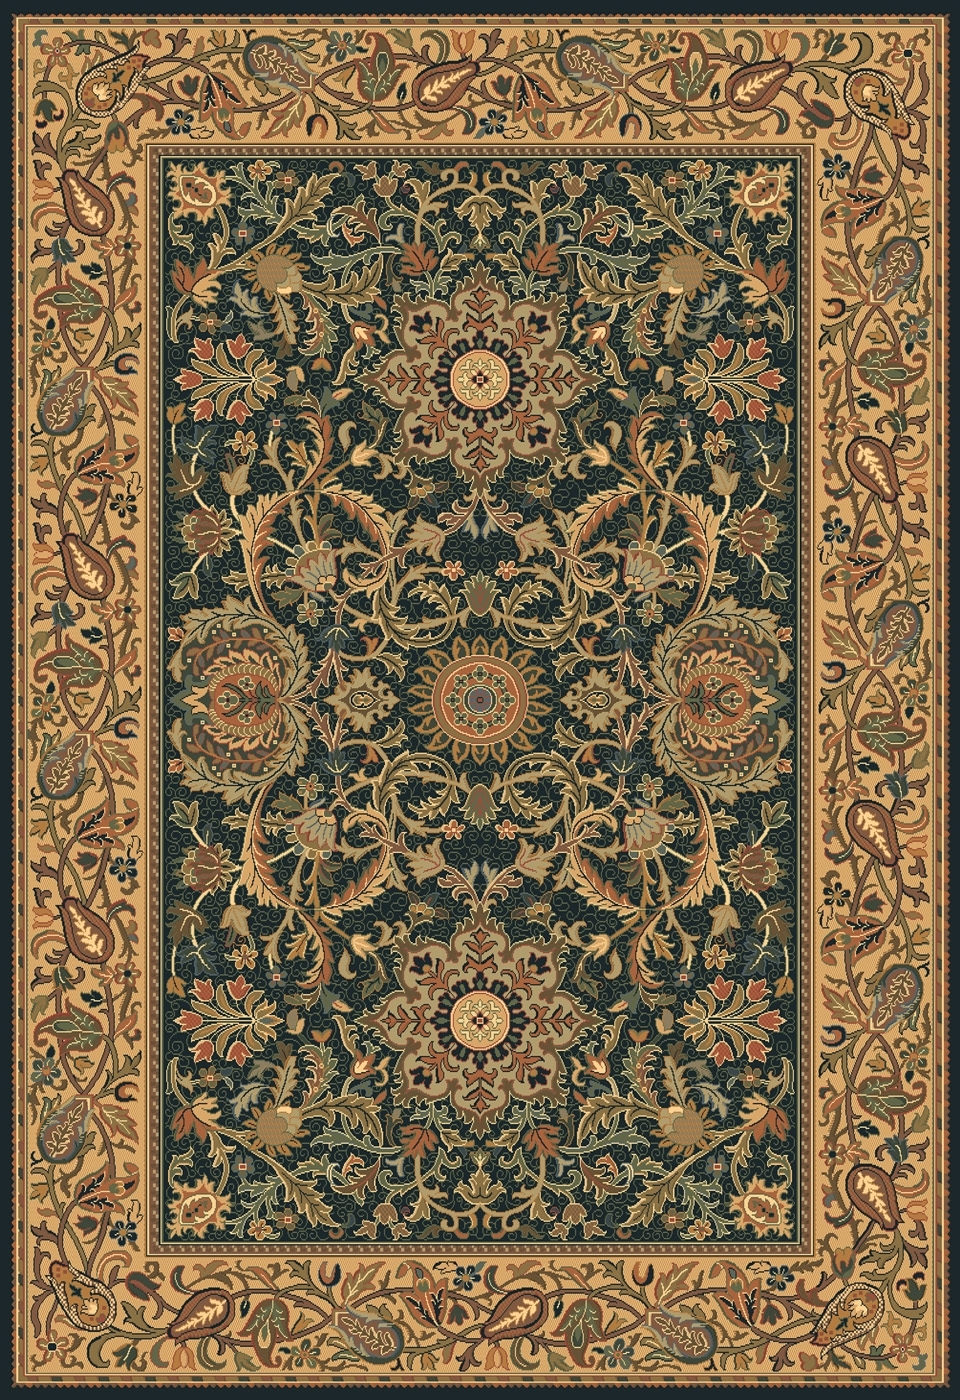 Green Persian Rugs Runner Rugs Rug And Home Manual 09 Throughout Green Persian Rugs (Image 13 of 15)